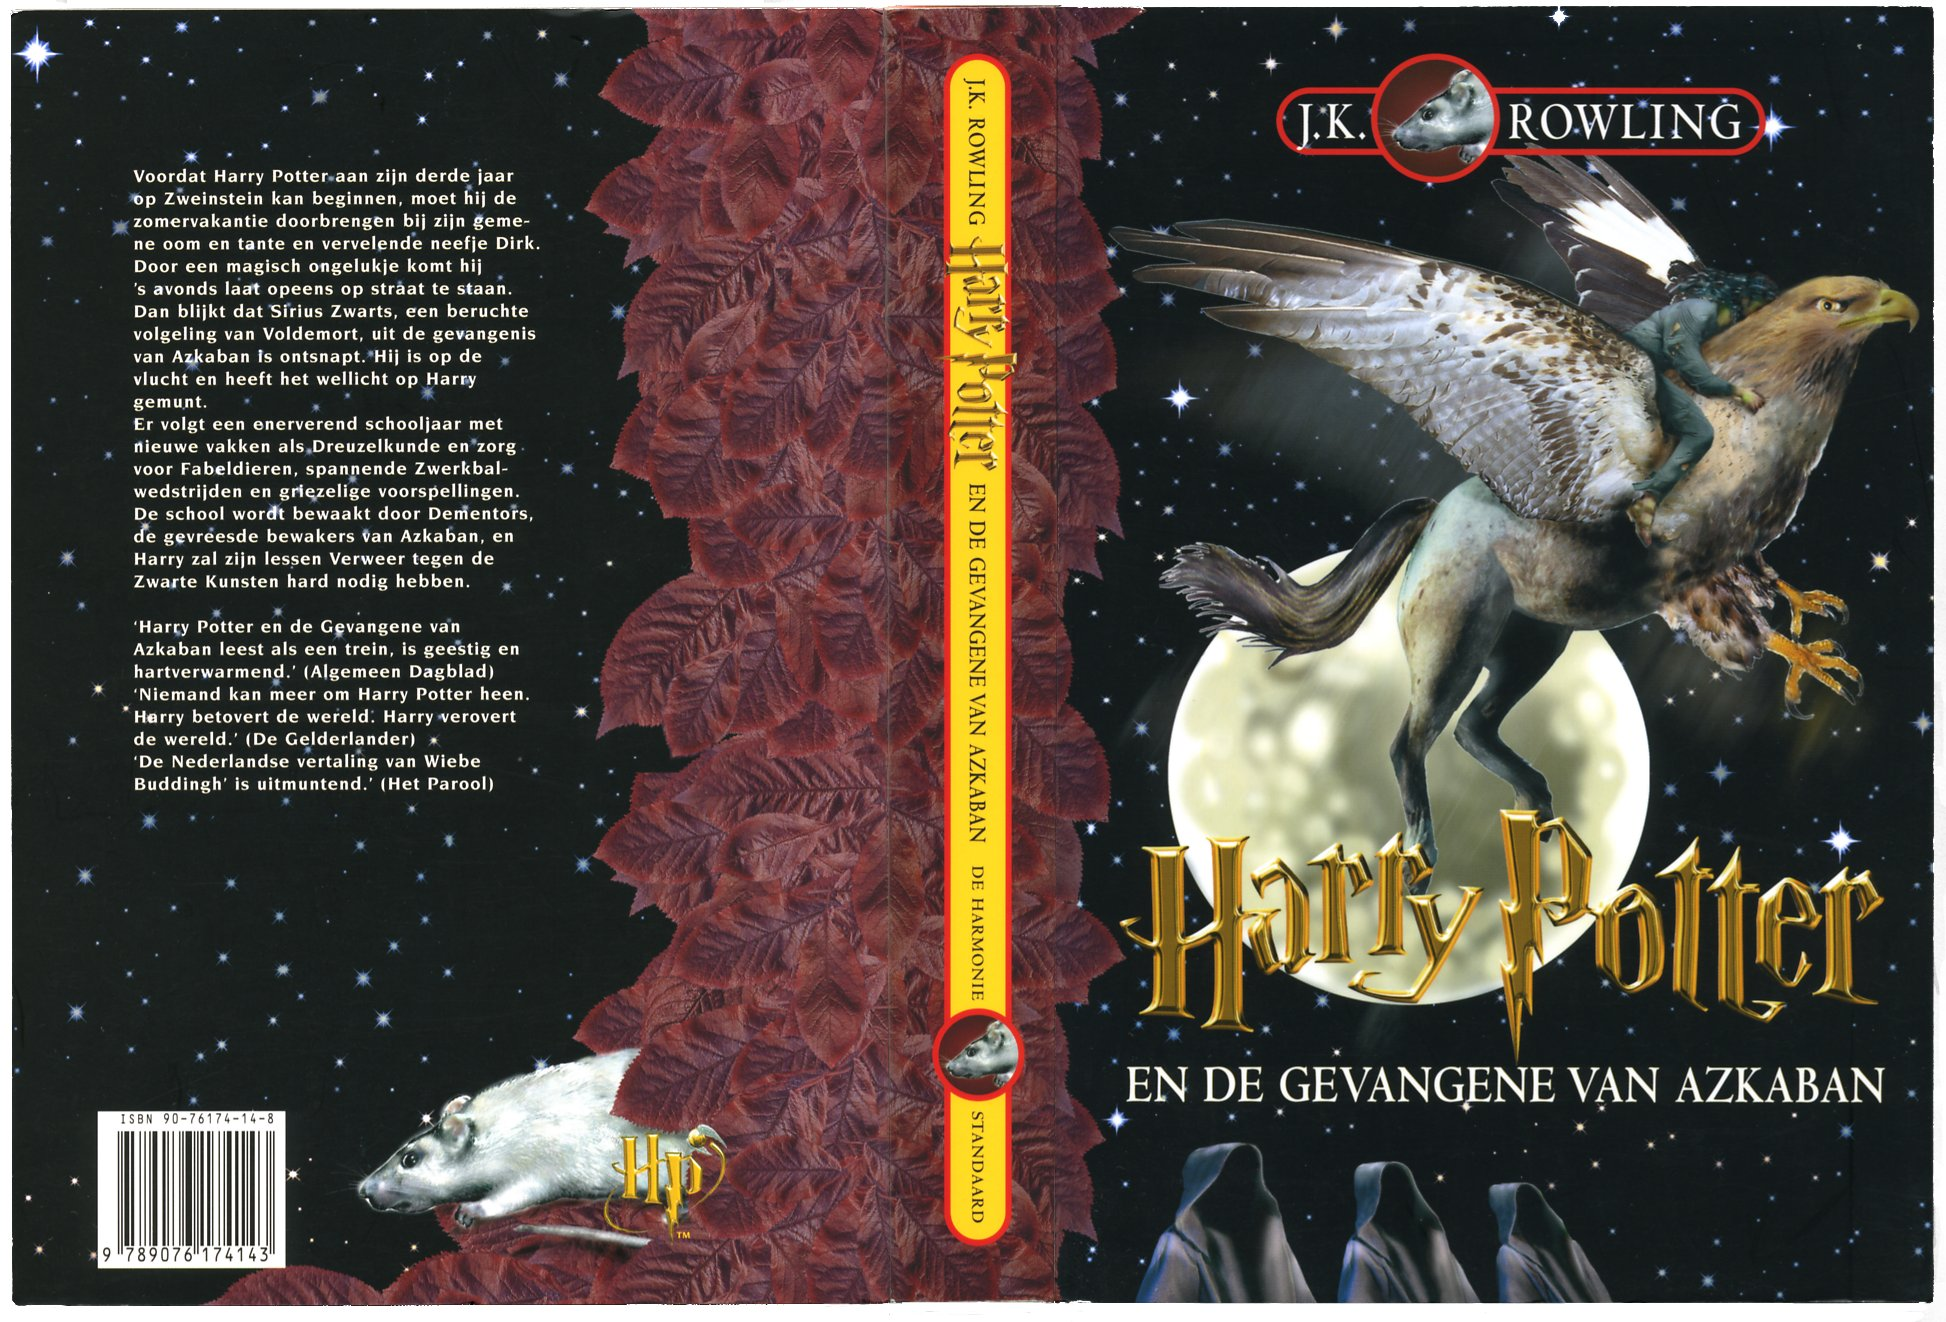 Harry potter book covers front and back